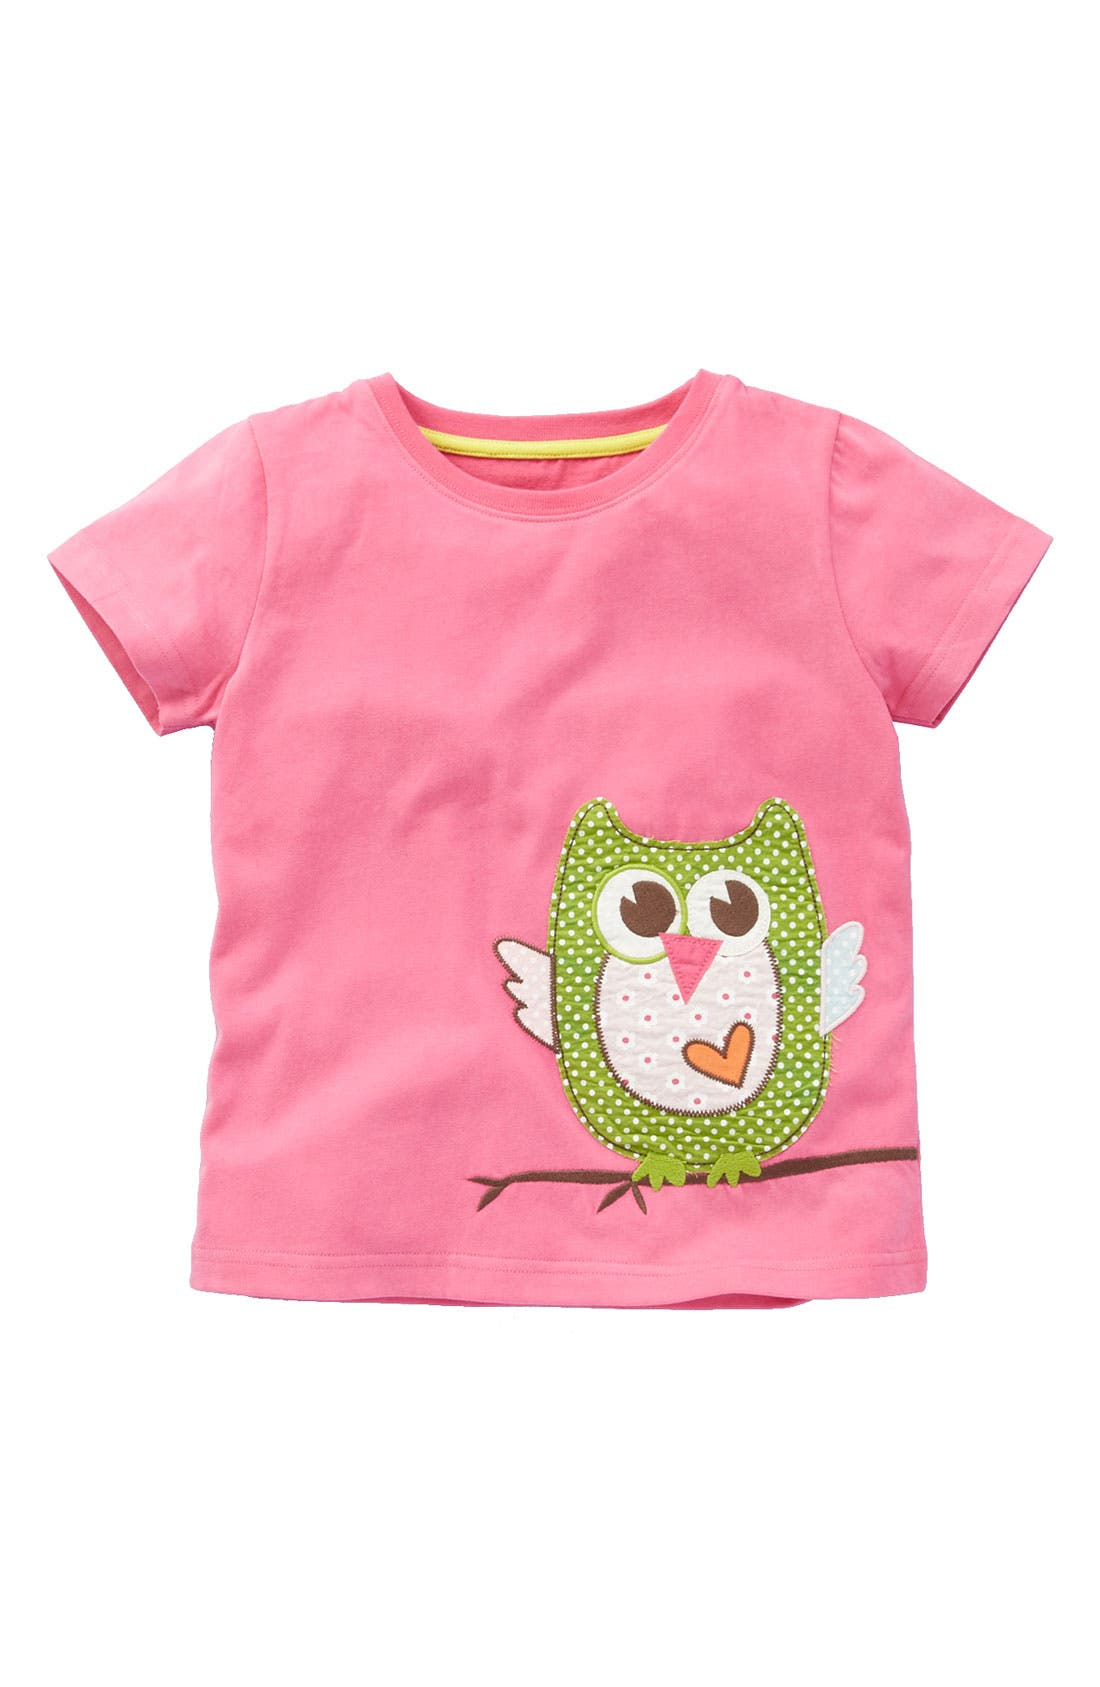 Alternate Image 1 Selected - Mini Boden 'Animal Patchwork' Tee (Toddler)